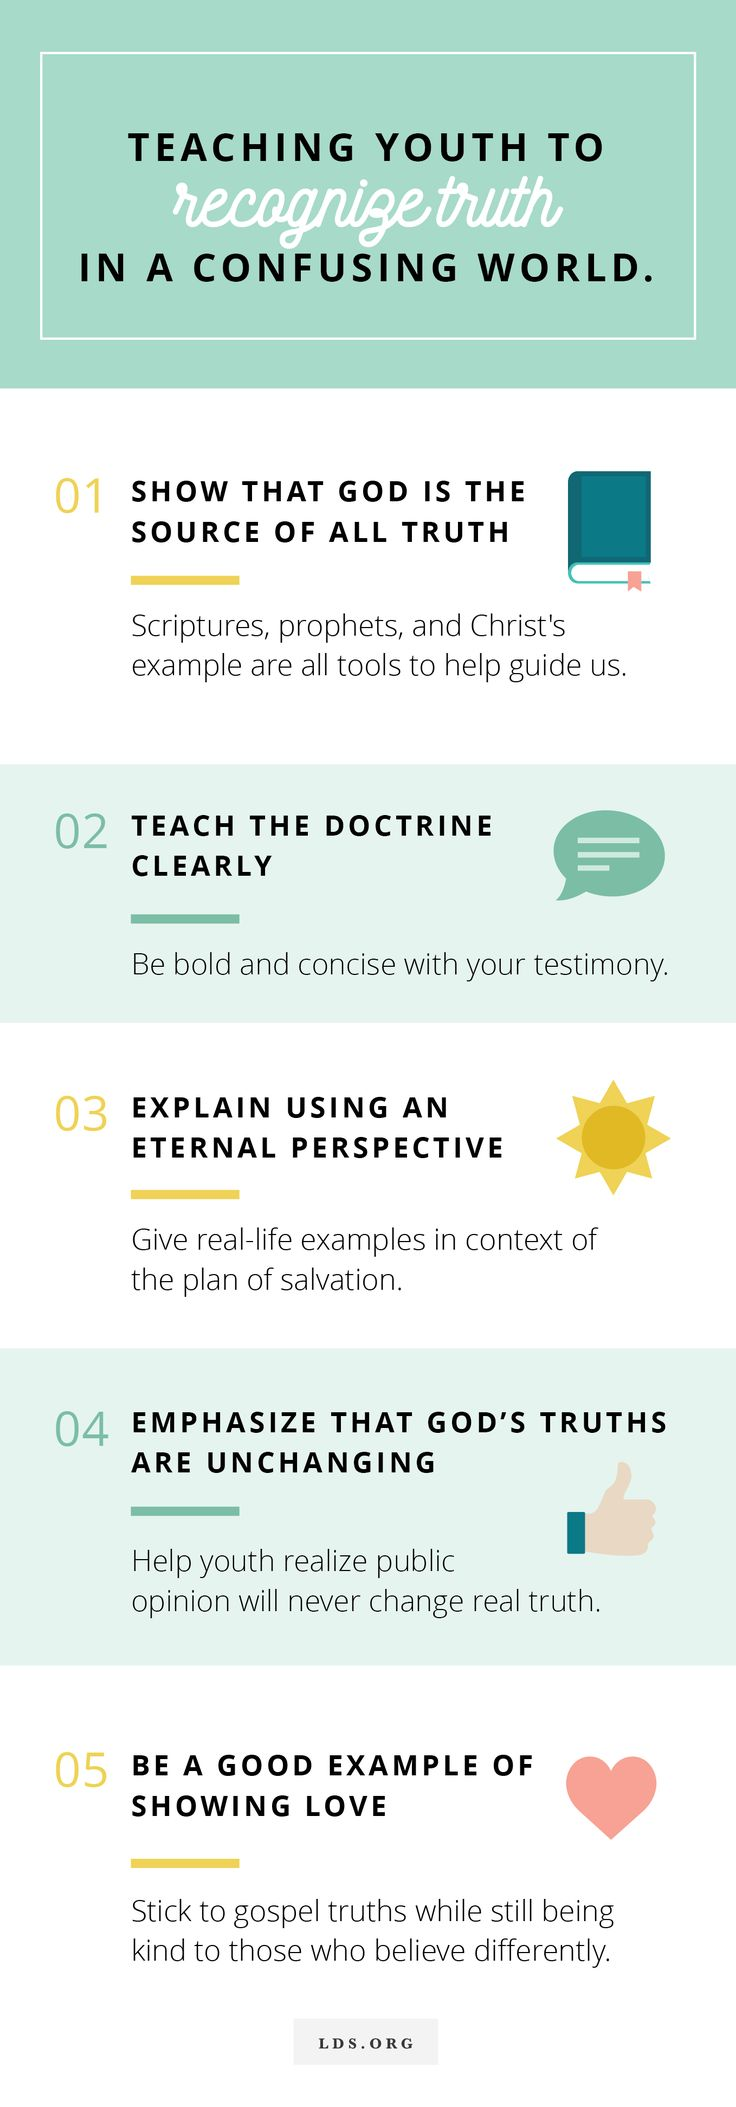 5 steps to teaching youth to recognize truth in a confusing world.